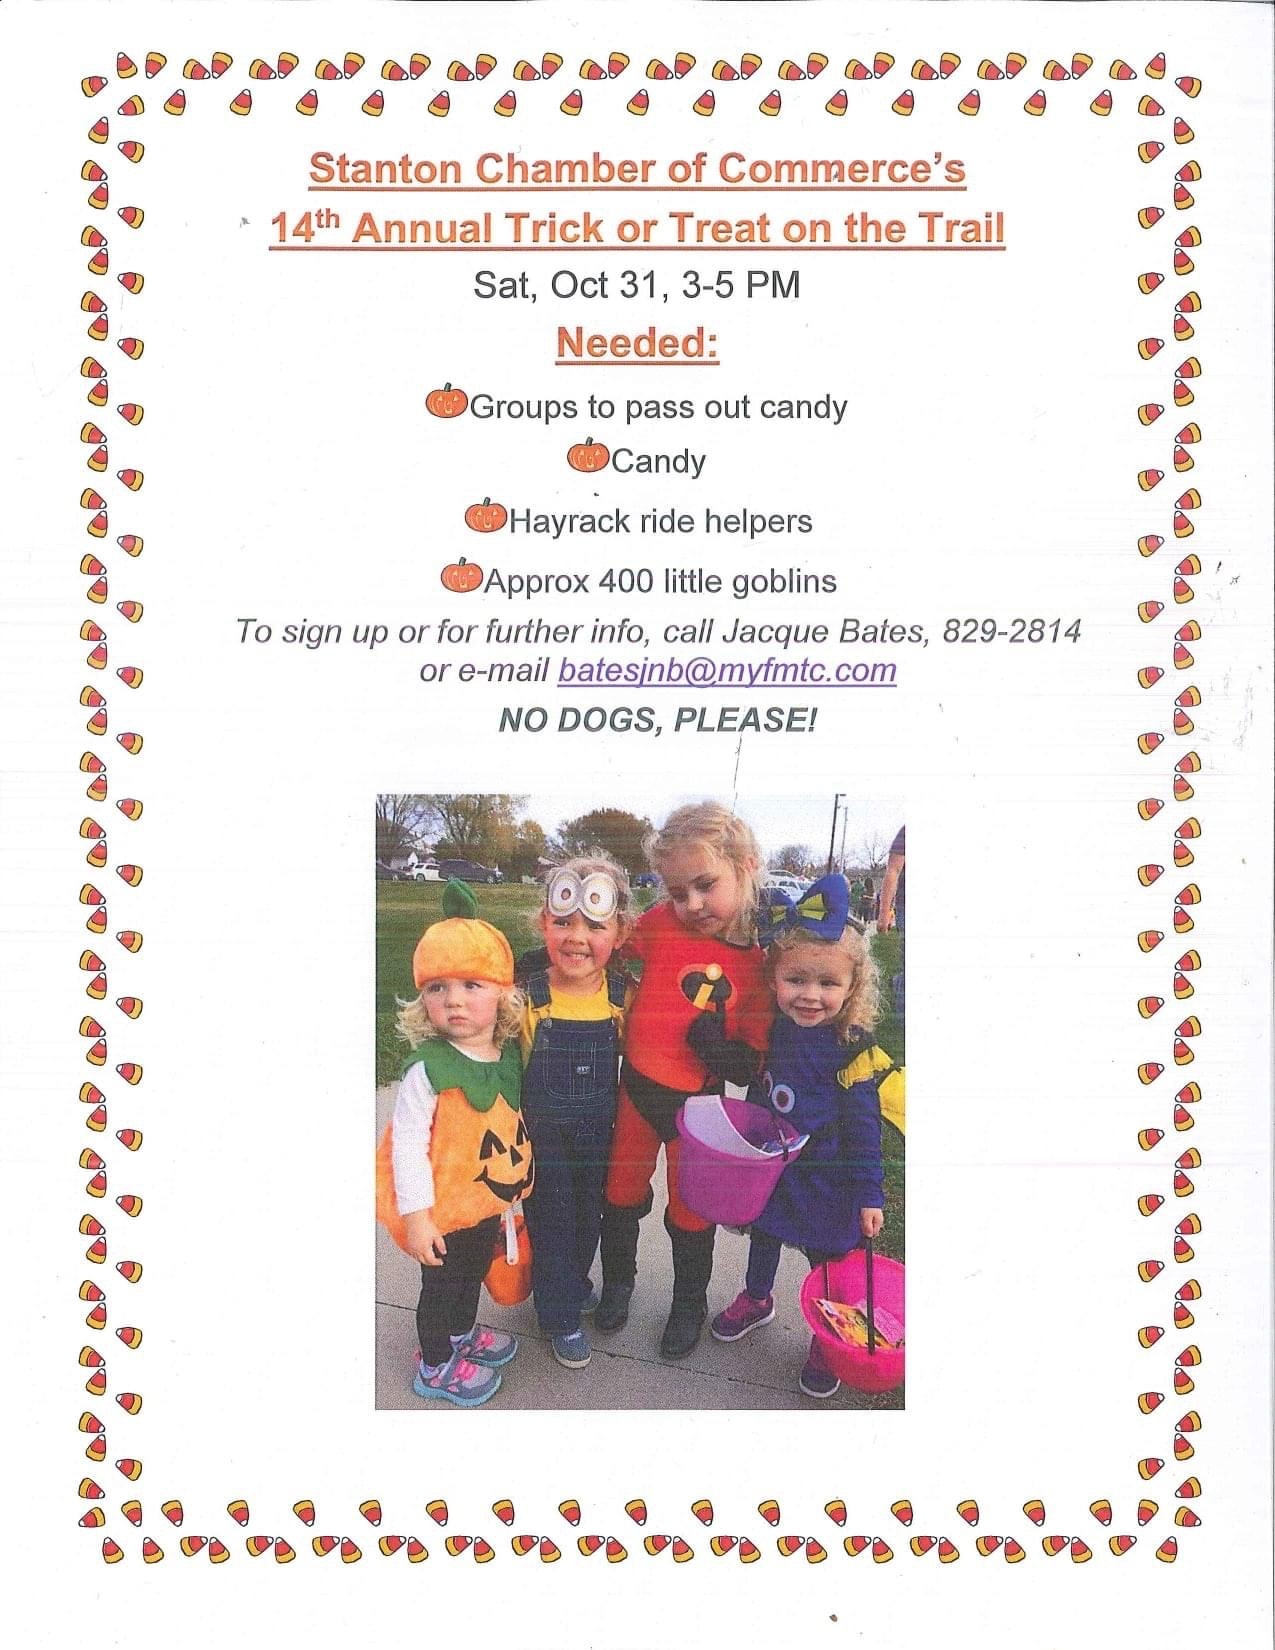 Trick or Treat on the Trail